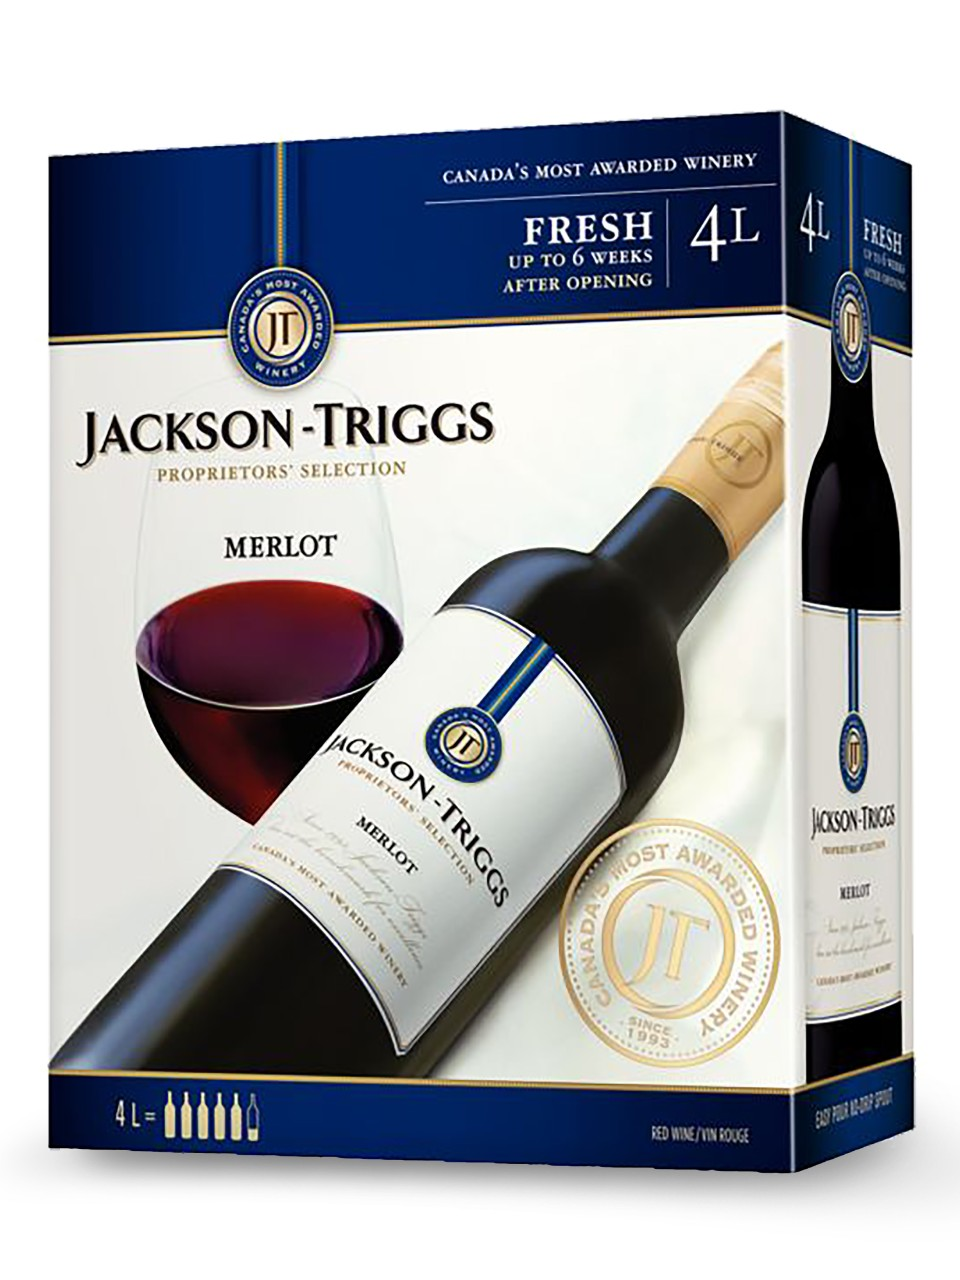 Jackson-Triggs Merlot Bag in Box